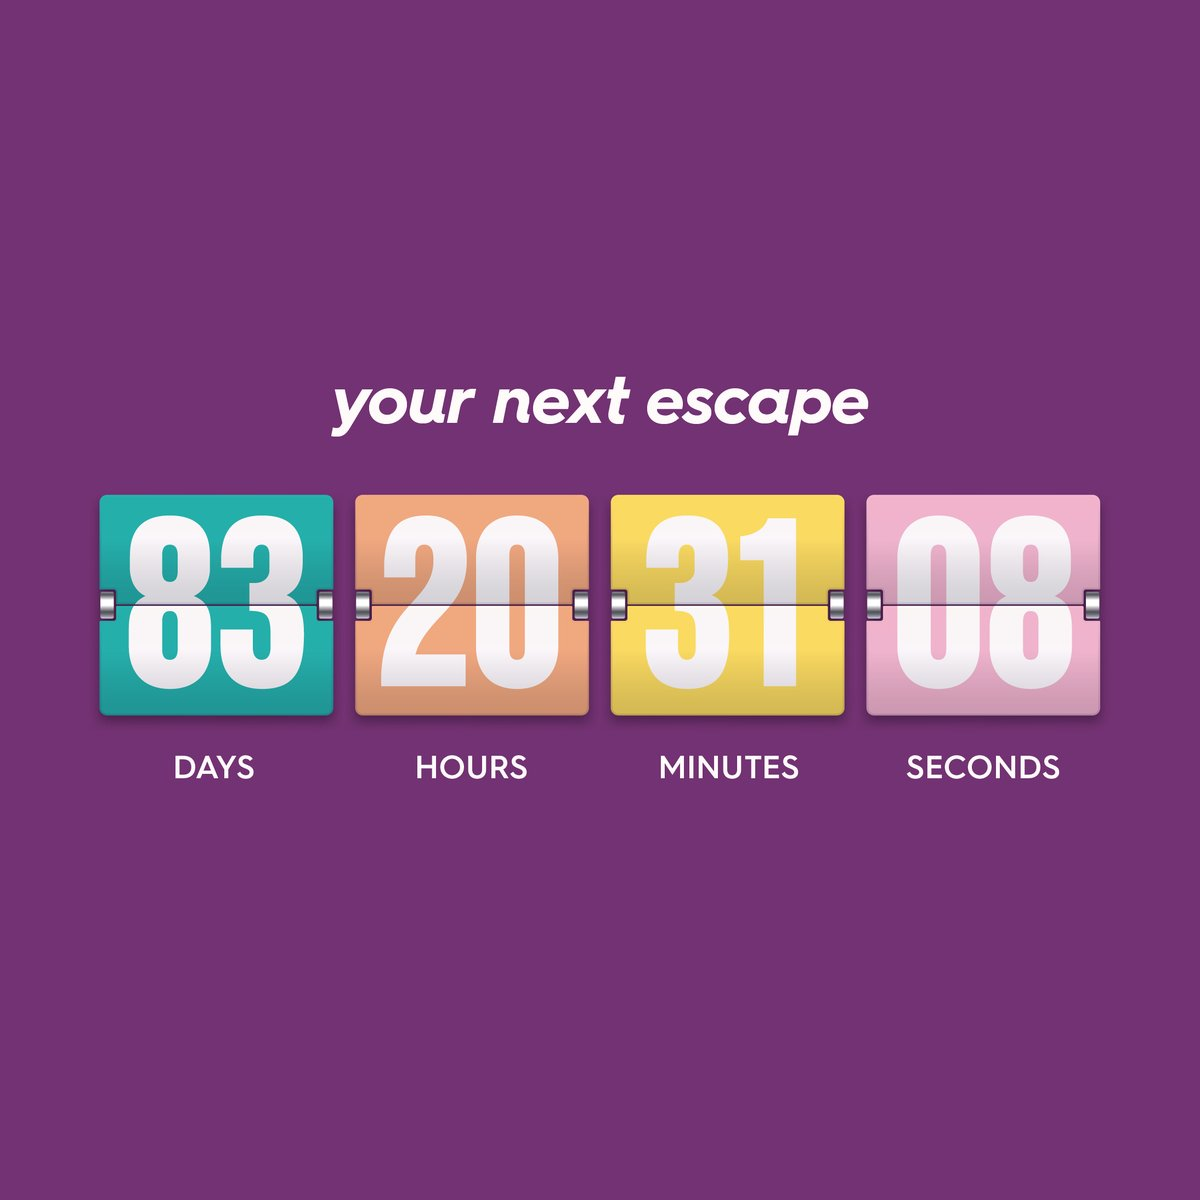 The second best thing about holidays (after being here!) is counting down!  Secure your October Half Term break with a 20% deposit today and the balance won't be due until 3rd October  https://t.co/sDbfpc4Kts https://t.co/cTibwR2Ag9